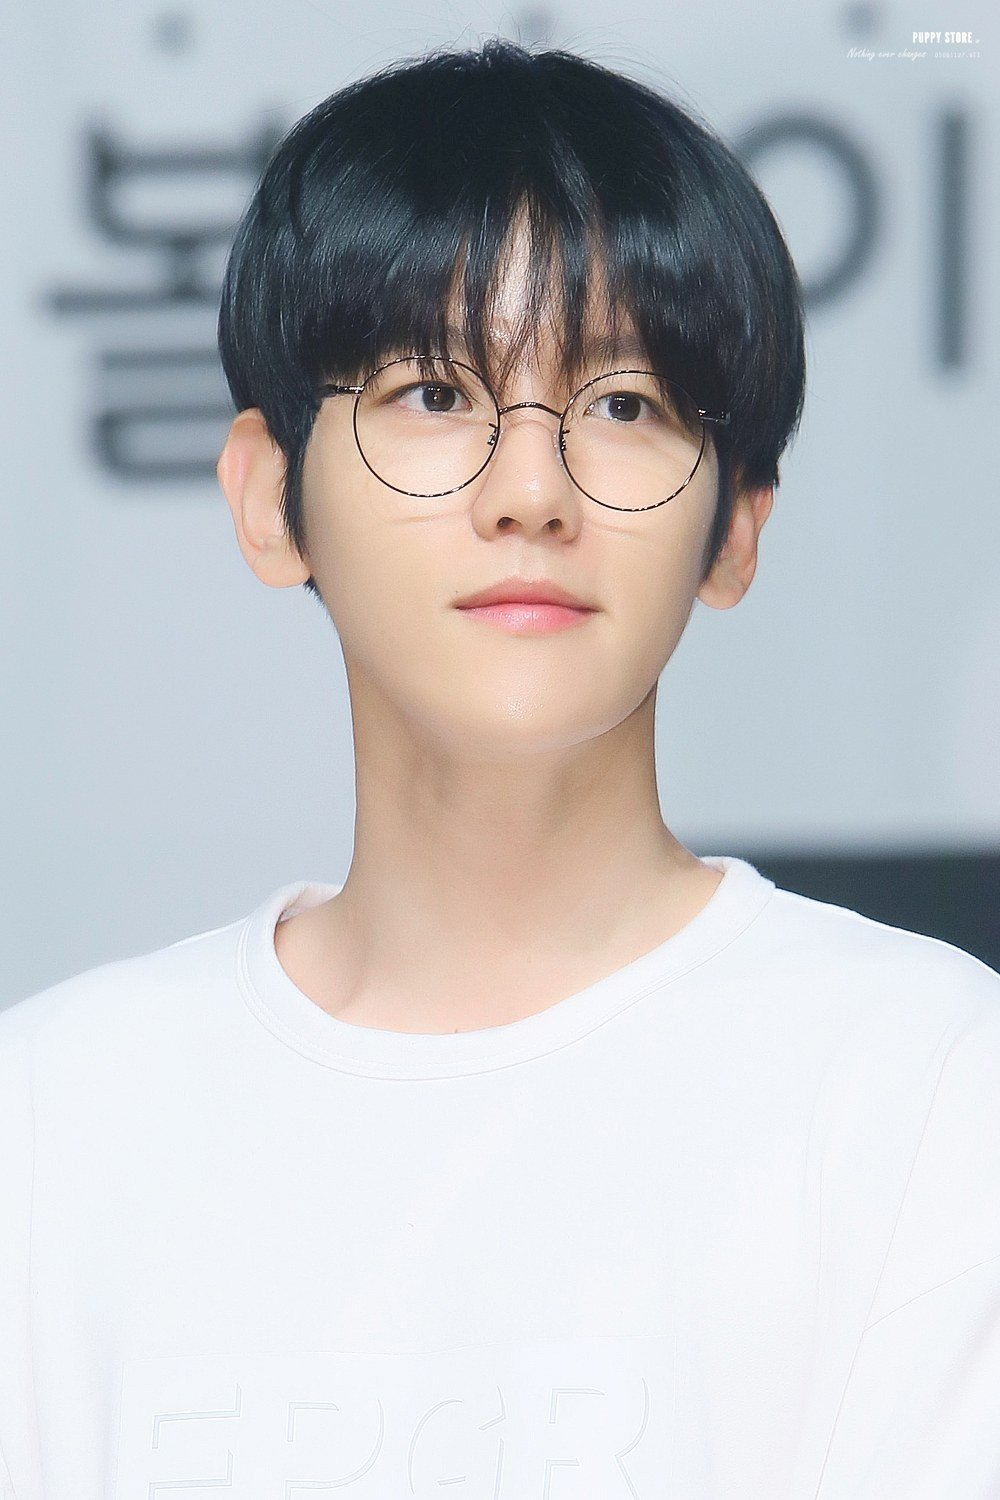 EXO's Baekhyun makes the usually geeky trend look appealing even for those who don't need glasses.